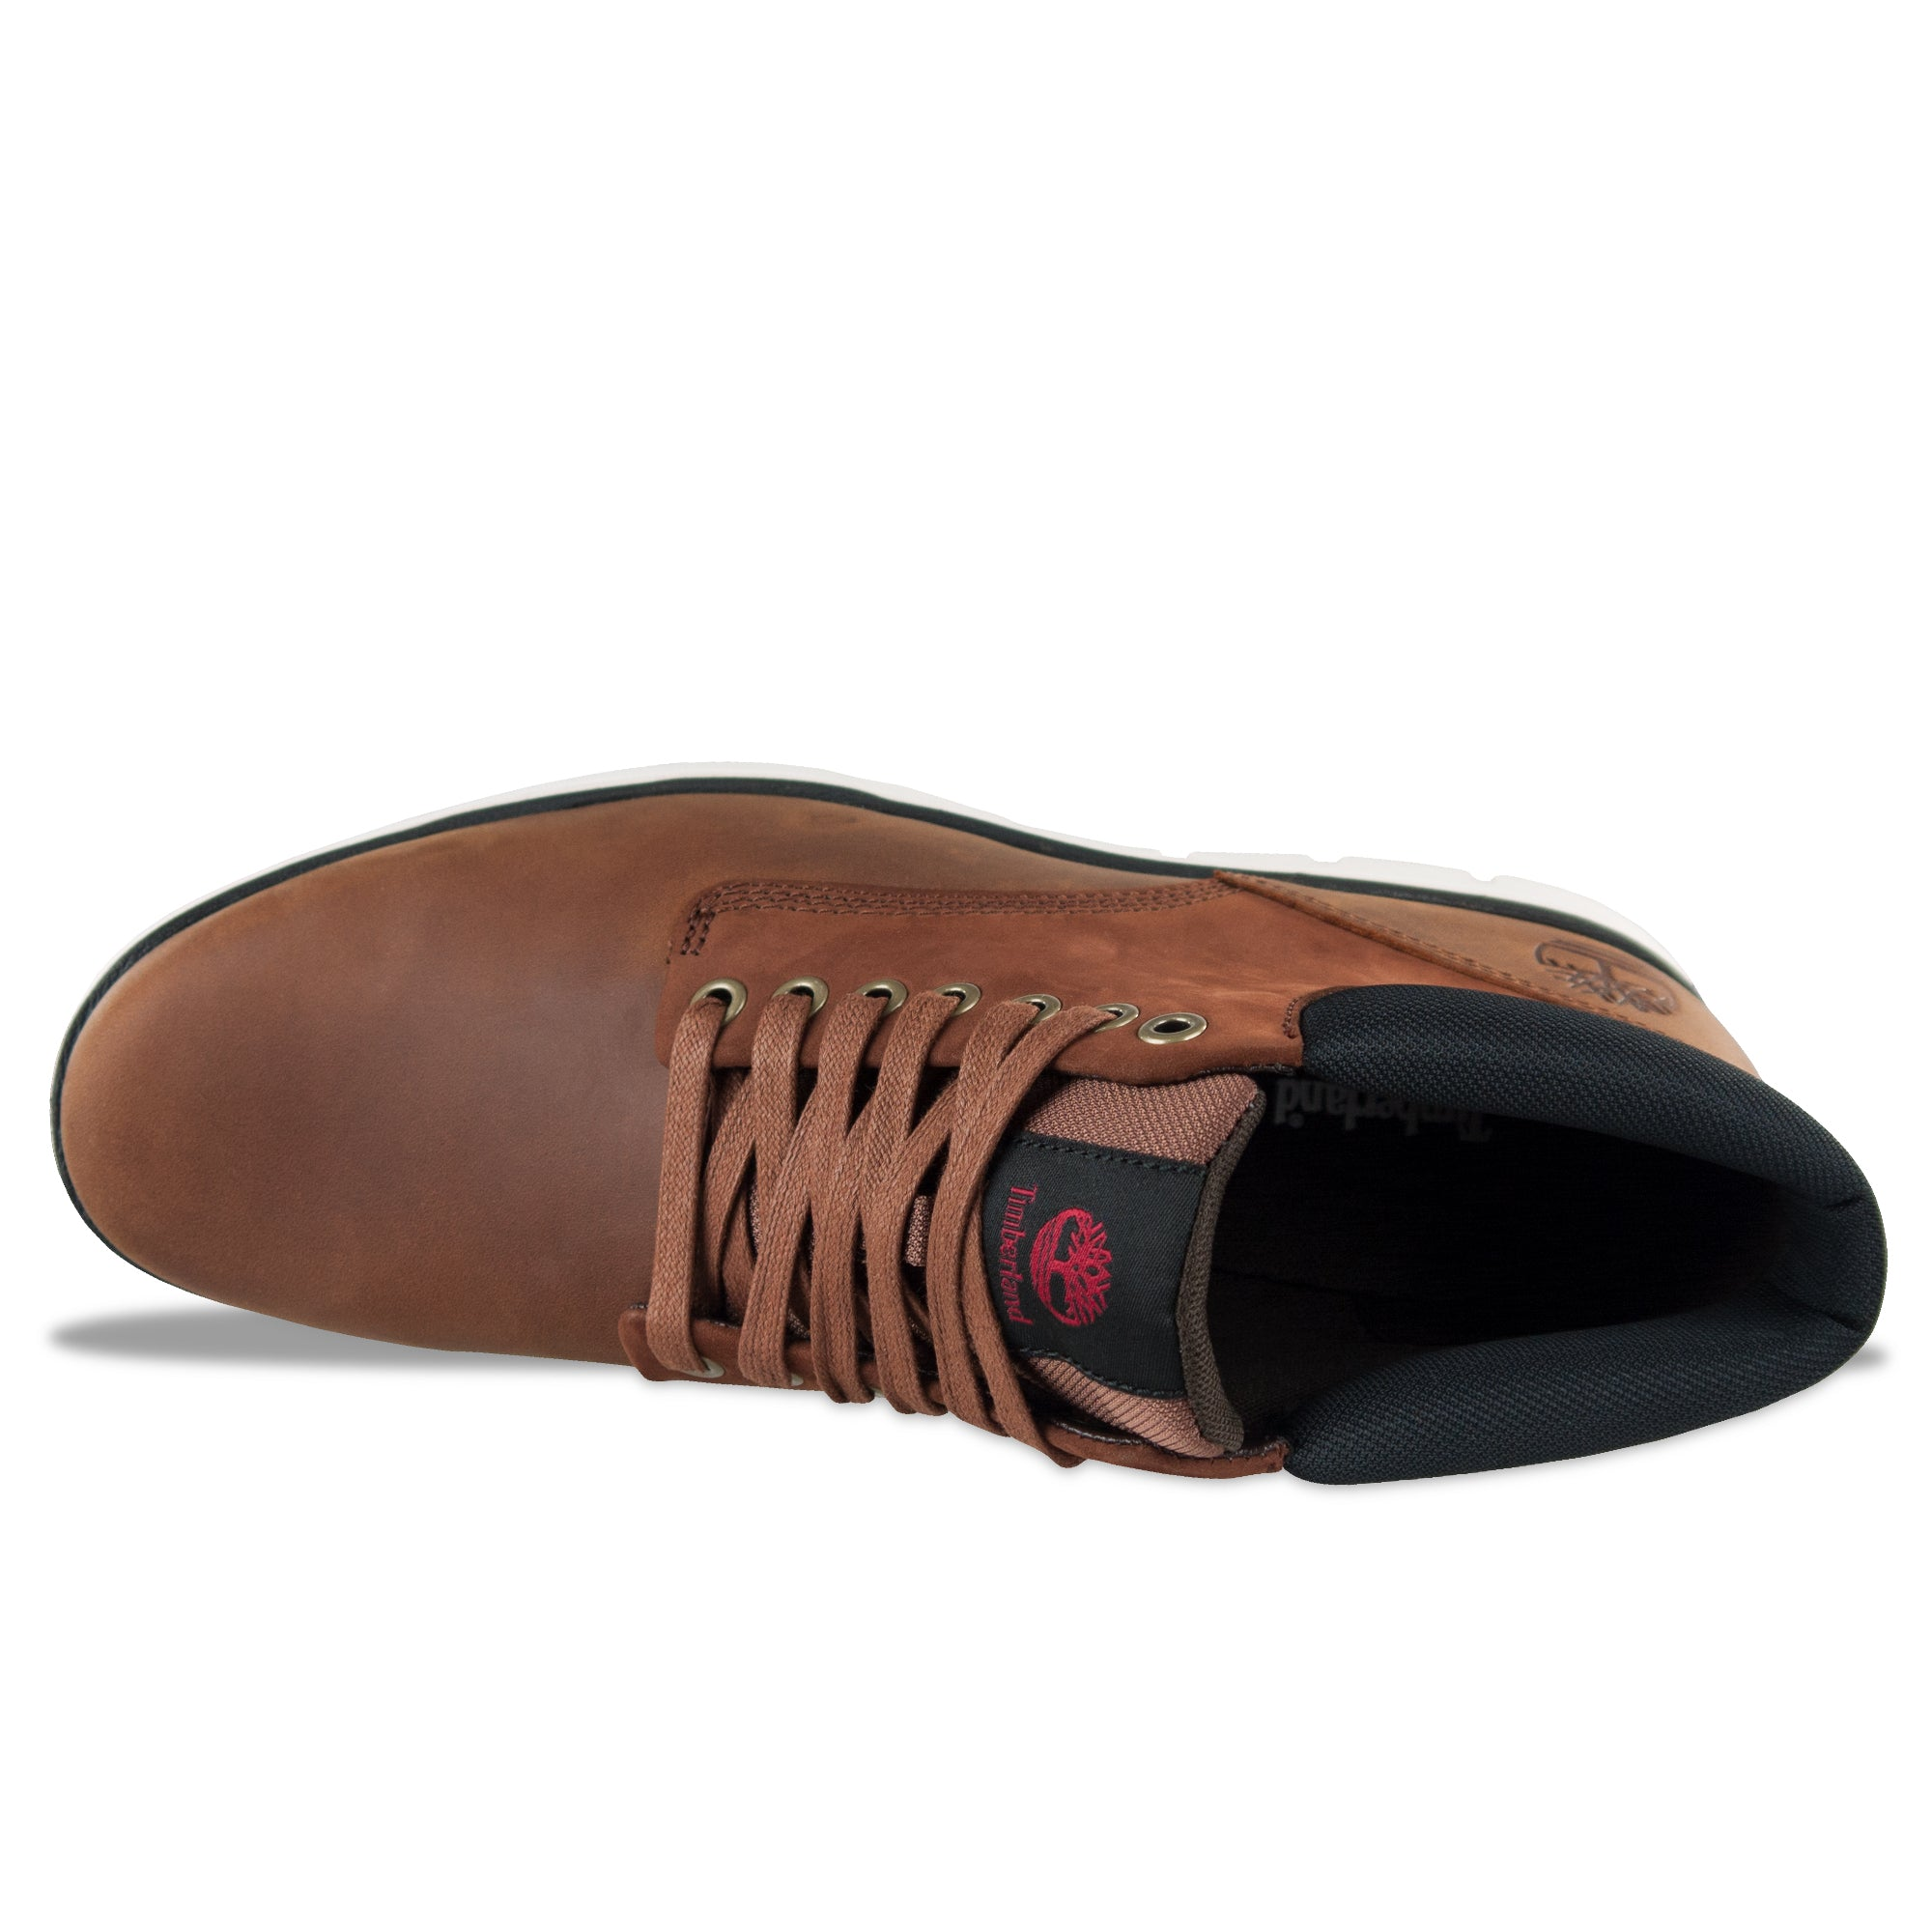 Timberland Bradstreet Chukka Boot Brown Leather | Arena